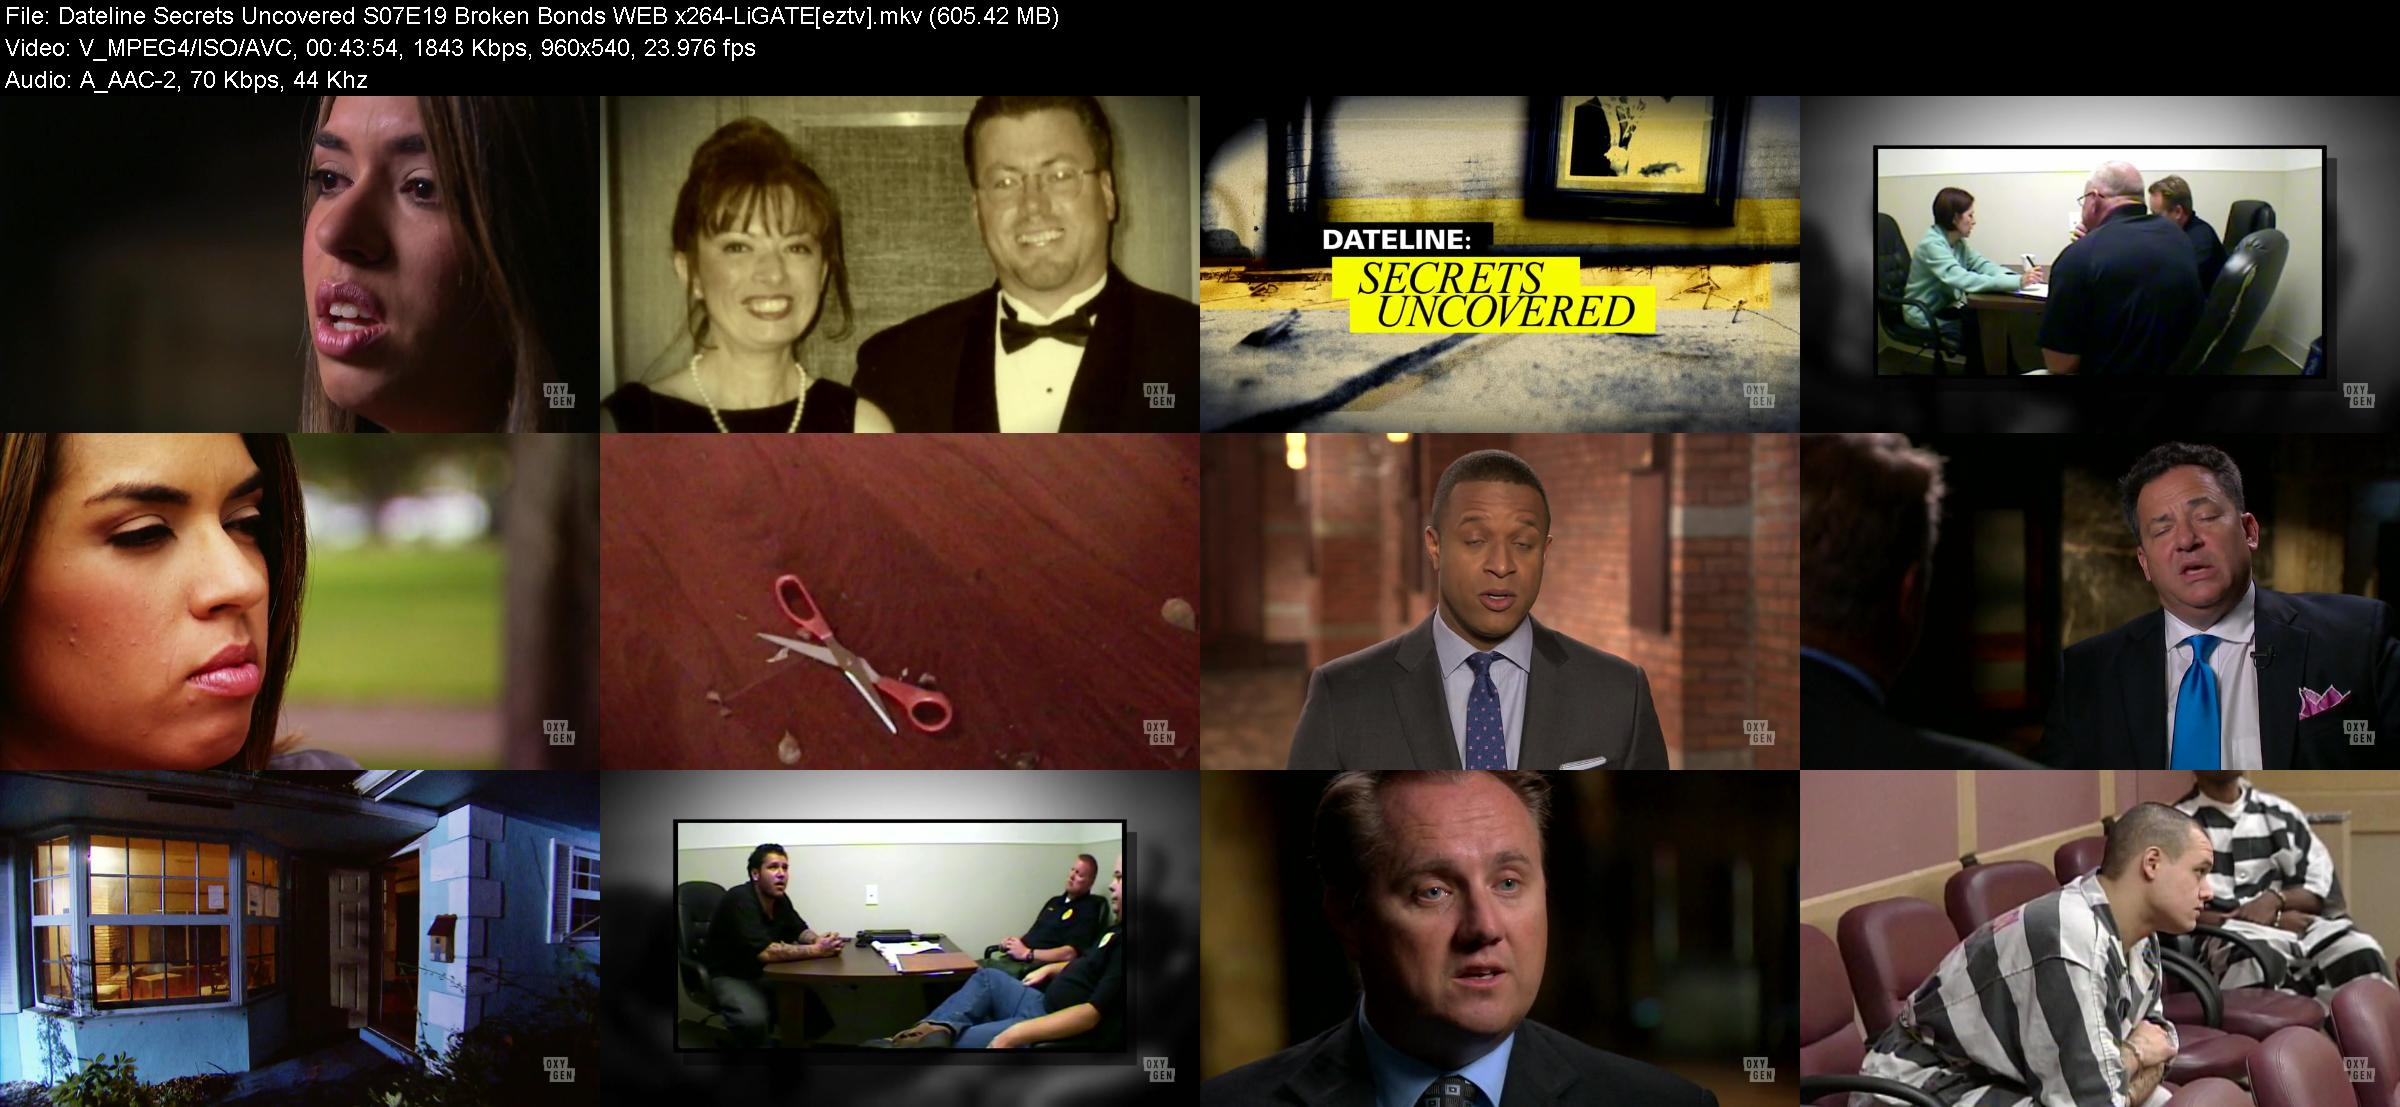 120446703_dateline-secrets-uncovered-s07e19-broken-bonds-web-x264-ligate.jpg